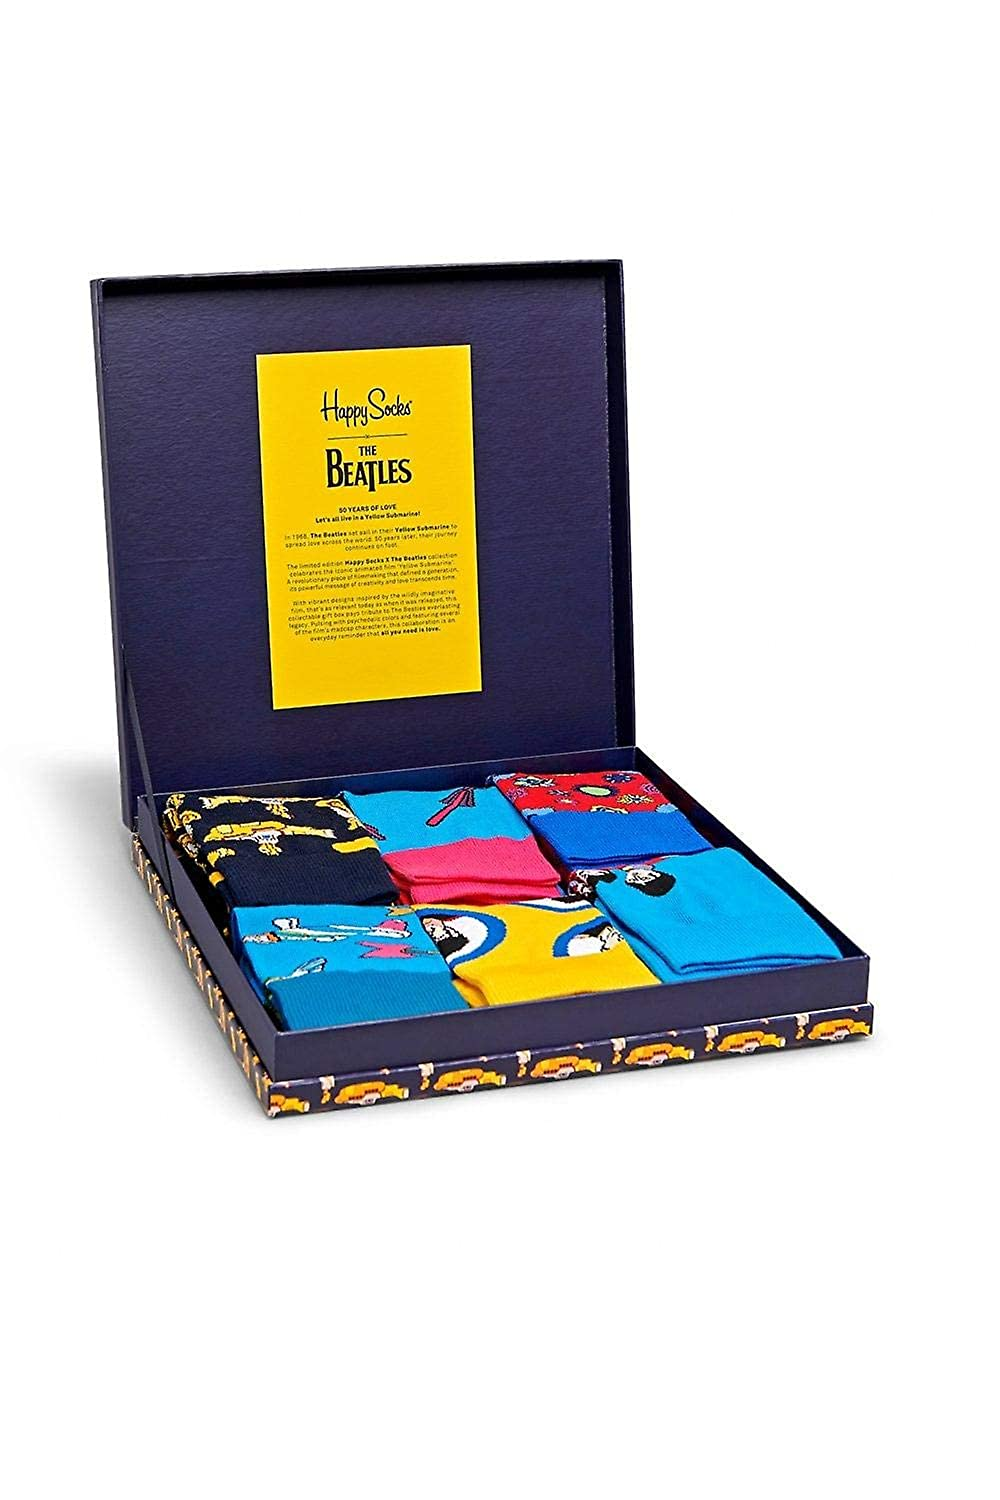 Happy Socks Limited Edition The Beatles Yellow Submarine 6 Pack Collectors LP Box at Amazon Mens Clothing store: